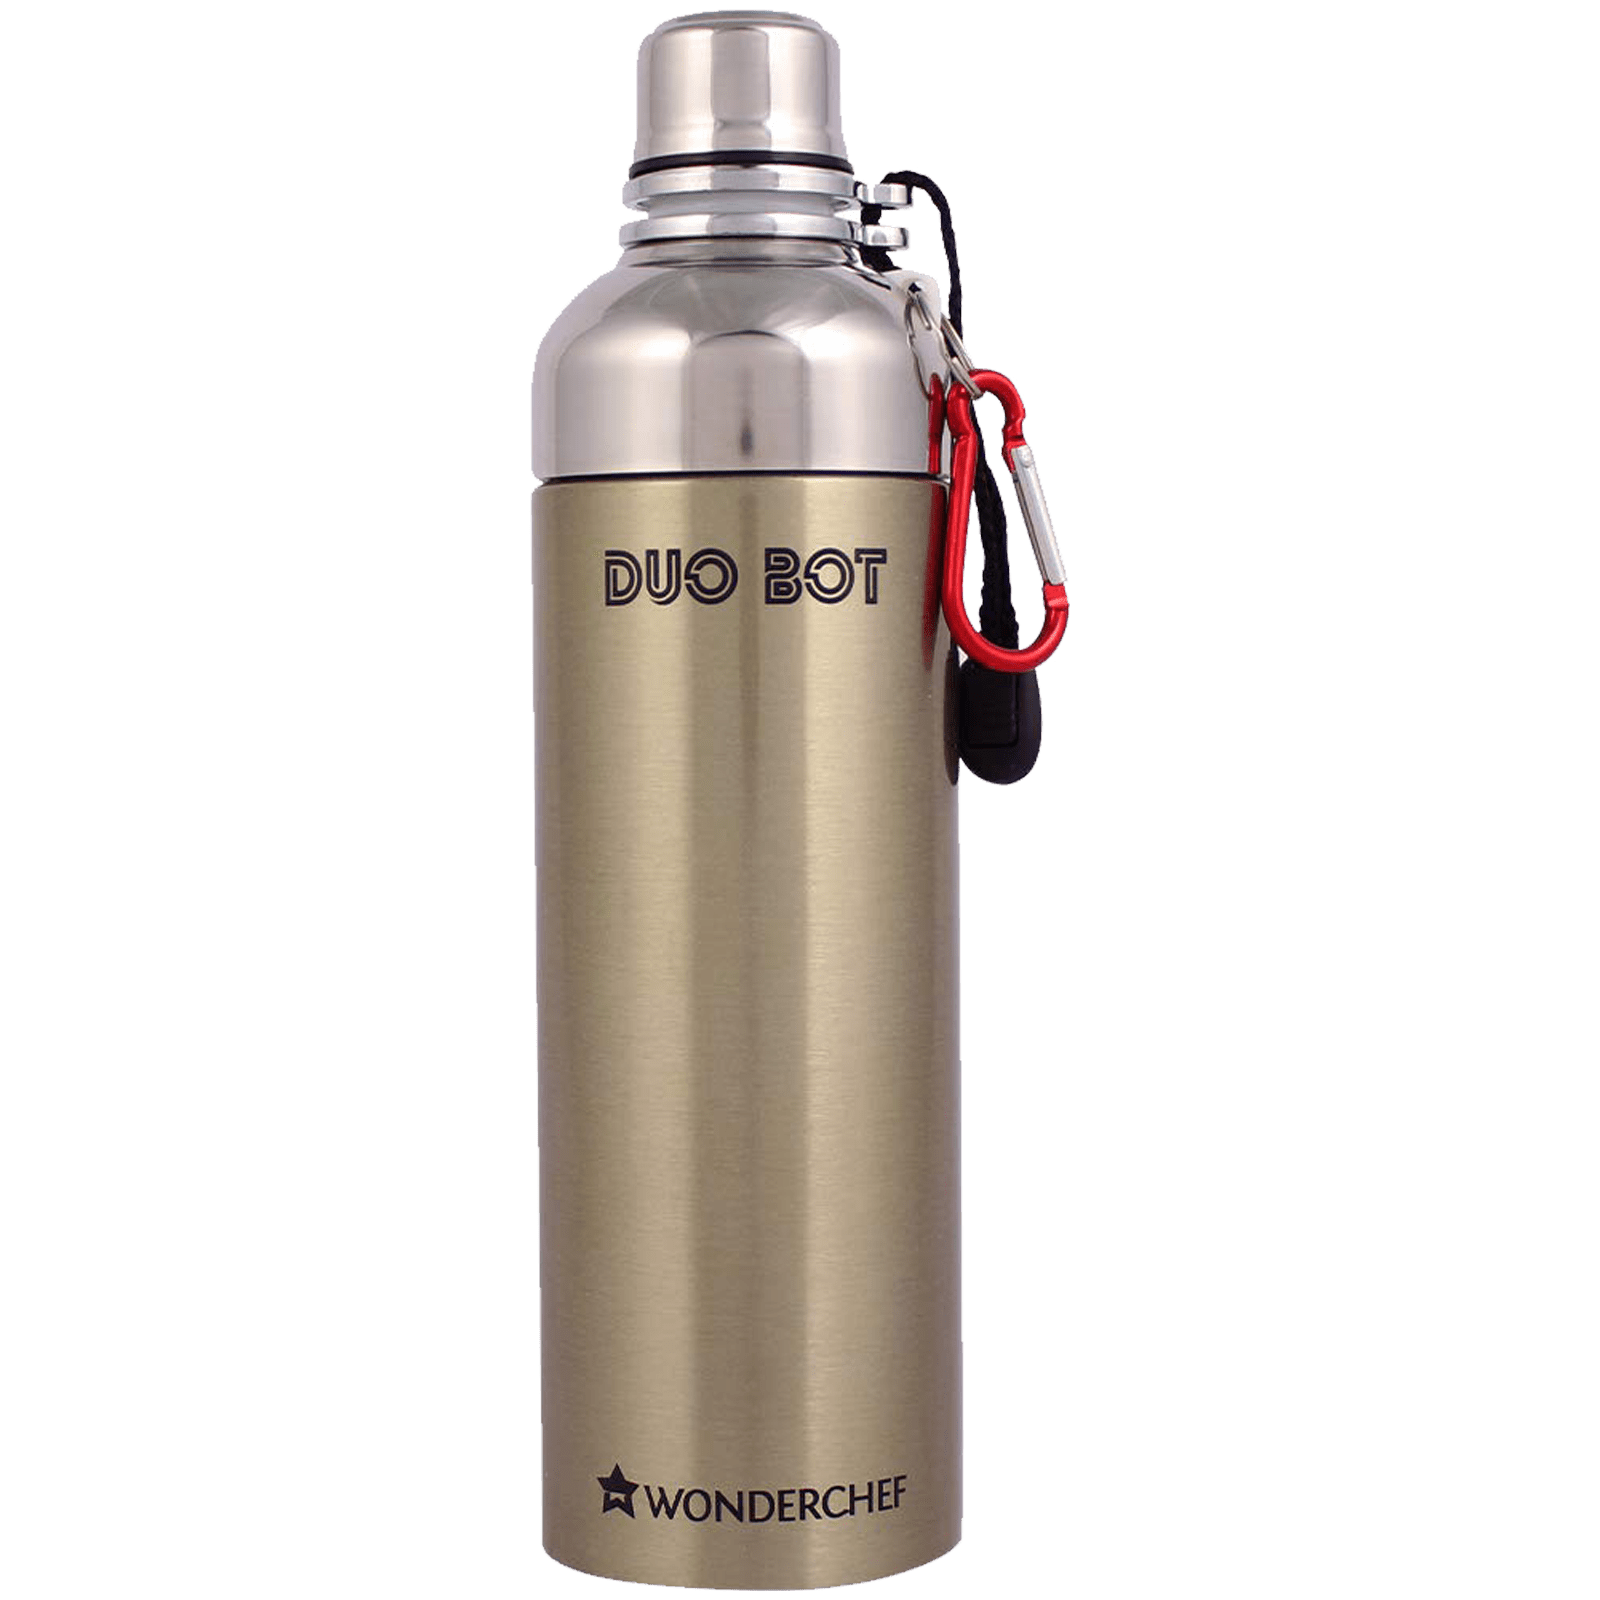 Wonderchef Duo-Bot 0.75 Litres Stainless Steel Water Bottle (Spill and Leak Proof, 63153154, Gold)